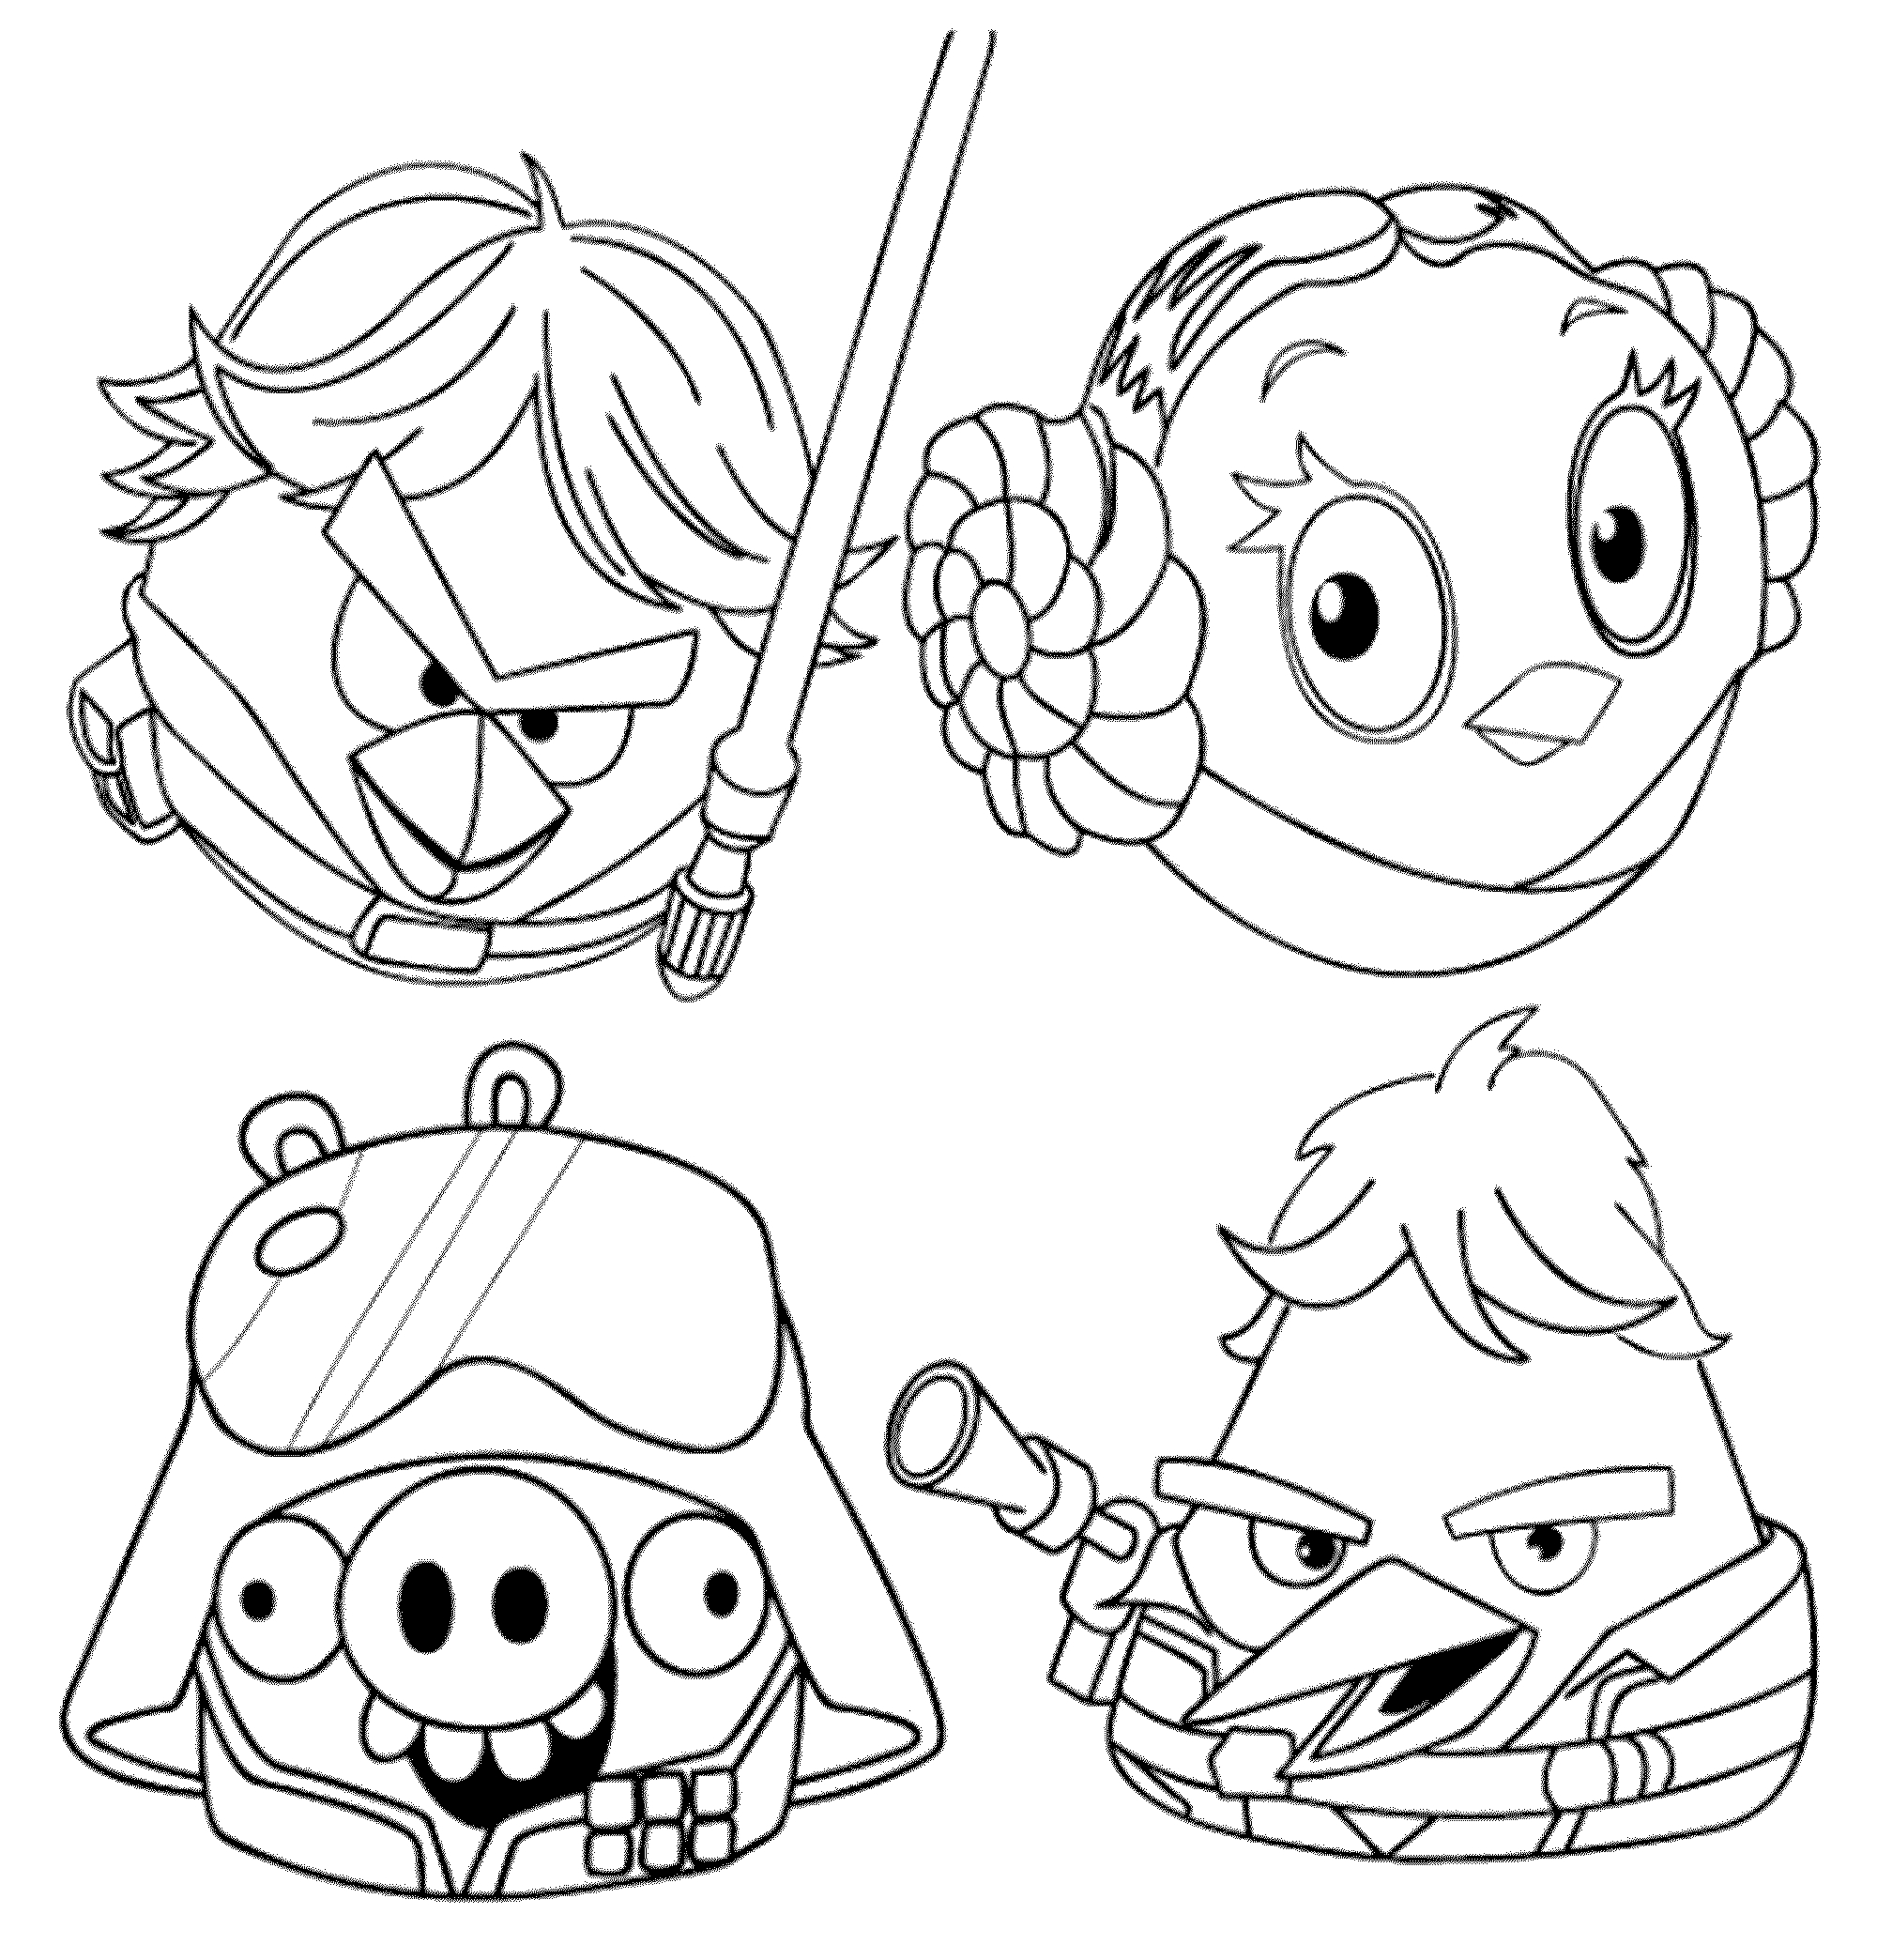 Cartoon Characters Coloring Pages Printable At